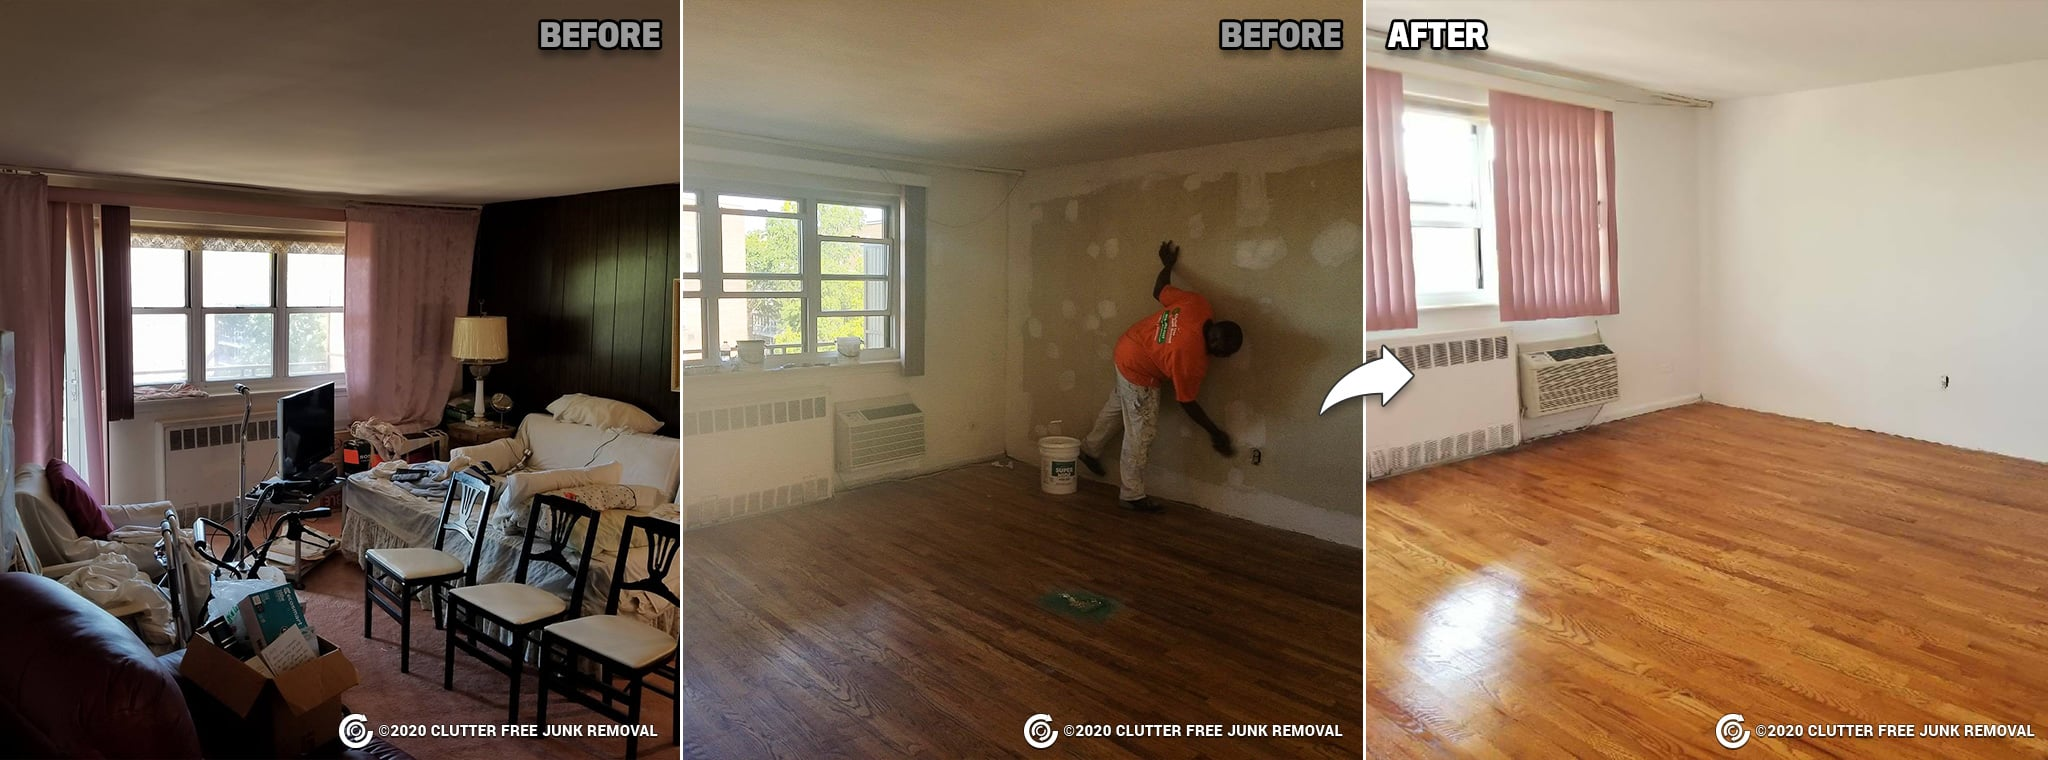 Cleanup and Home Improvement in New York, NY.